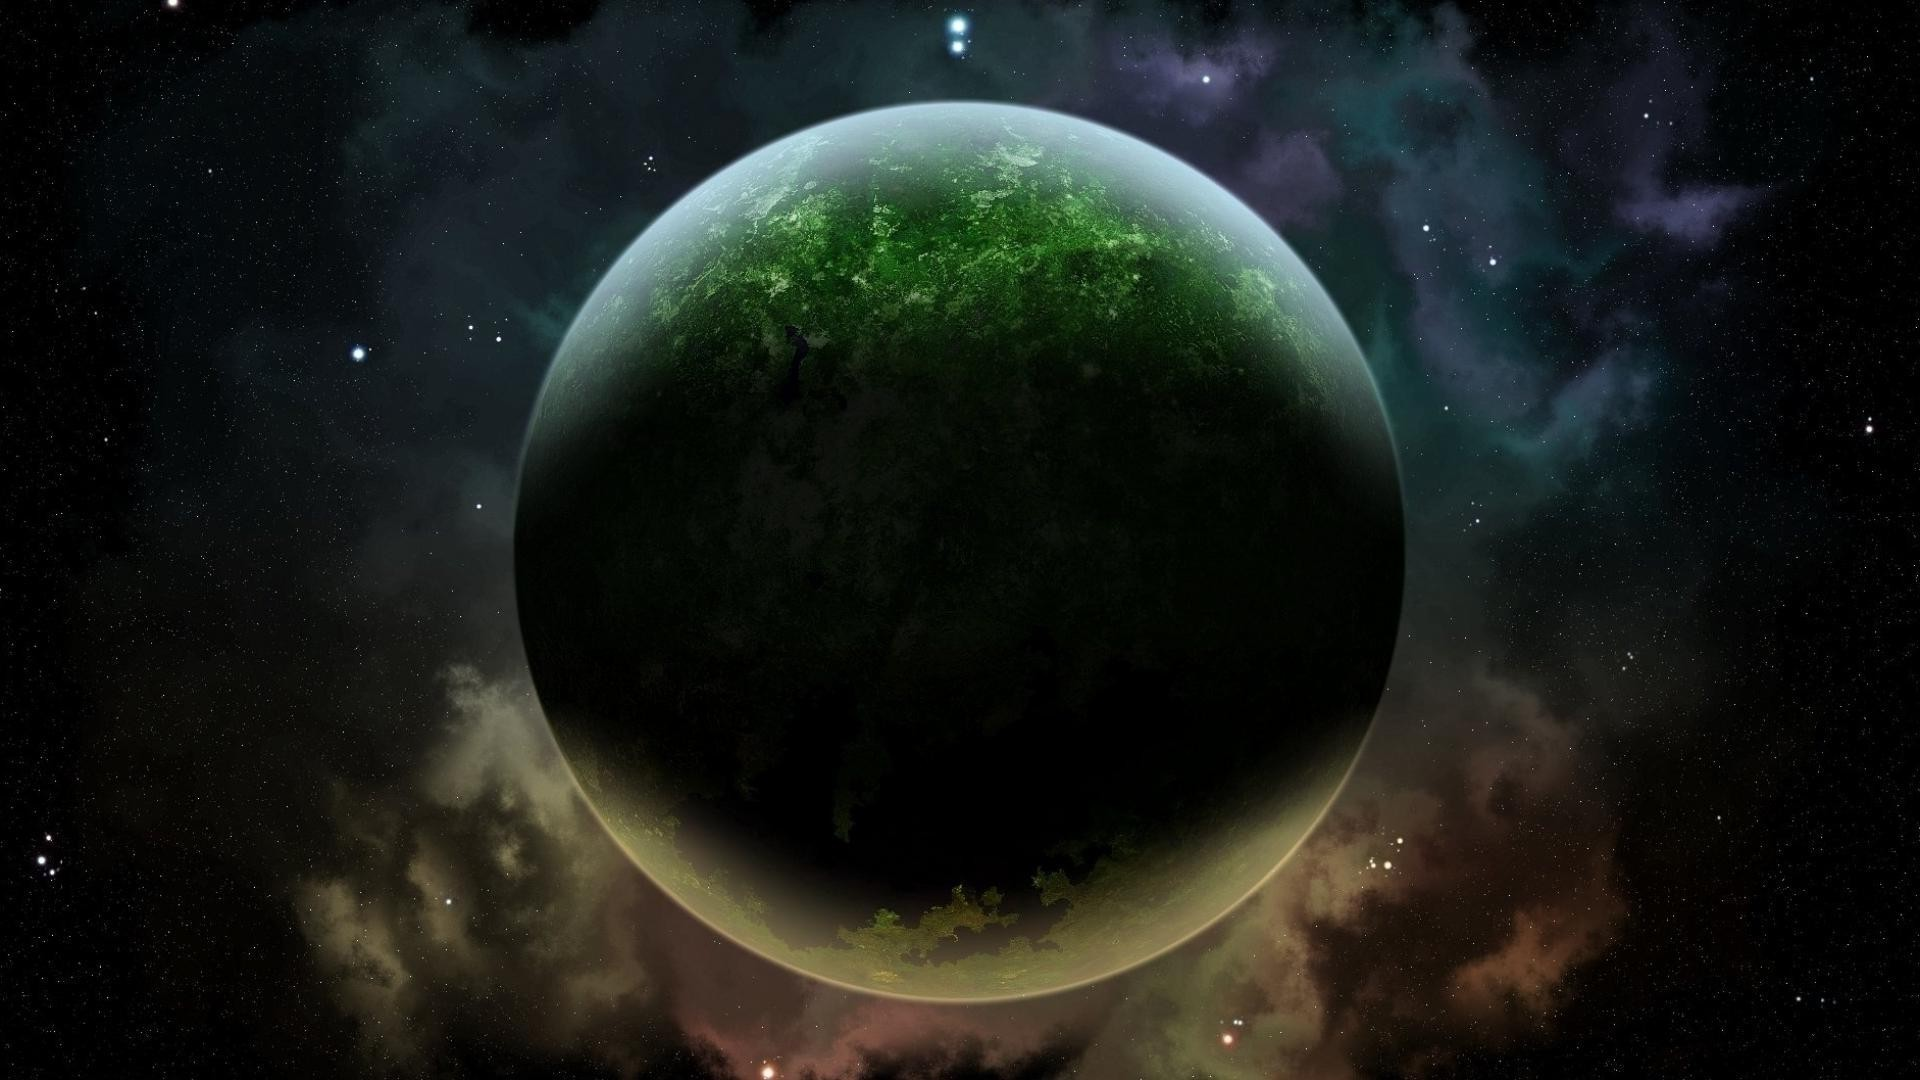 green planet. iphone wallpapers for free.